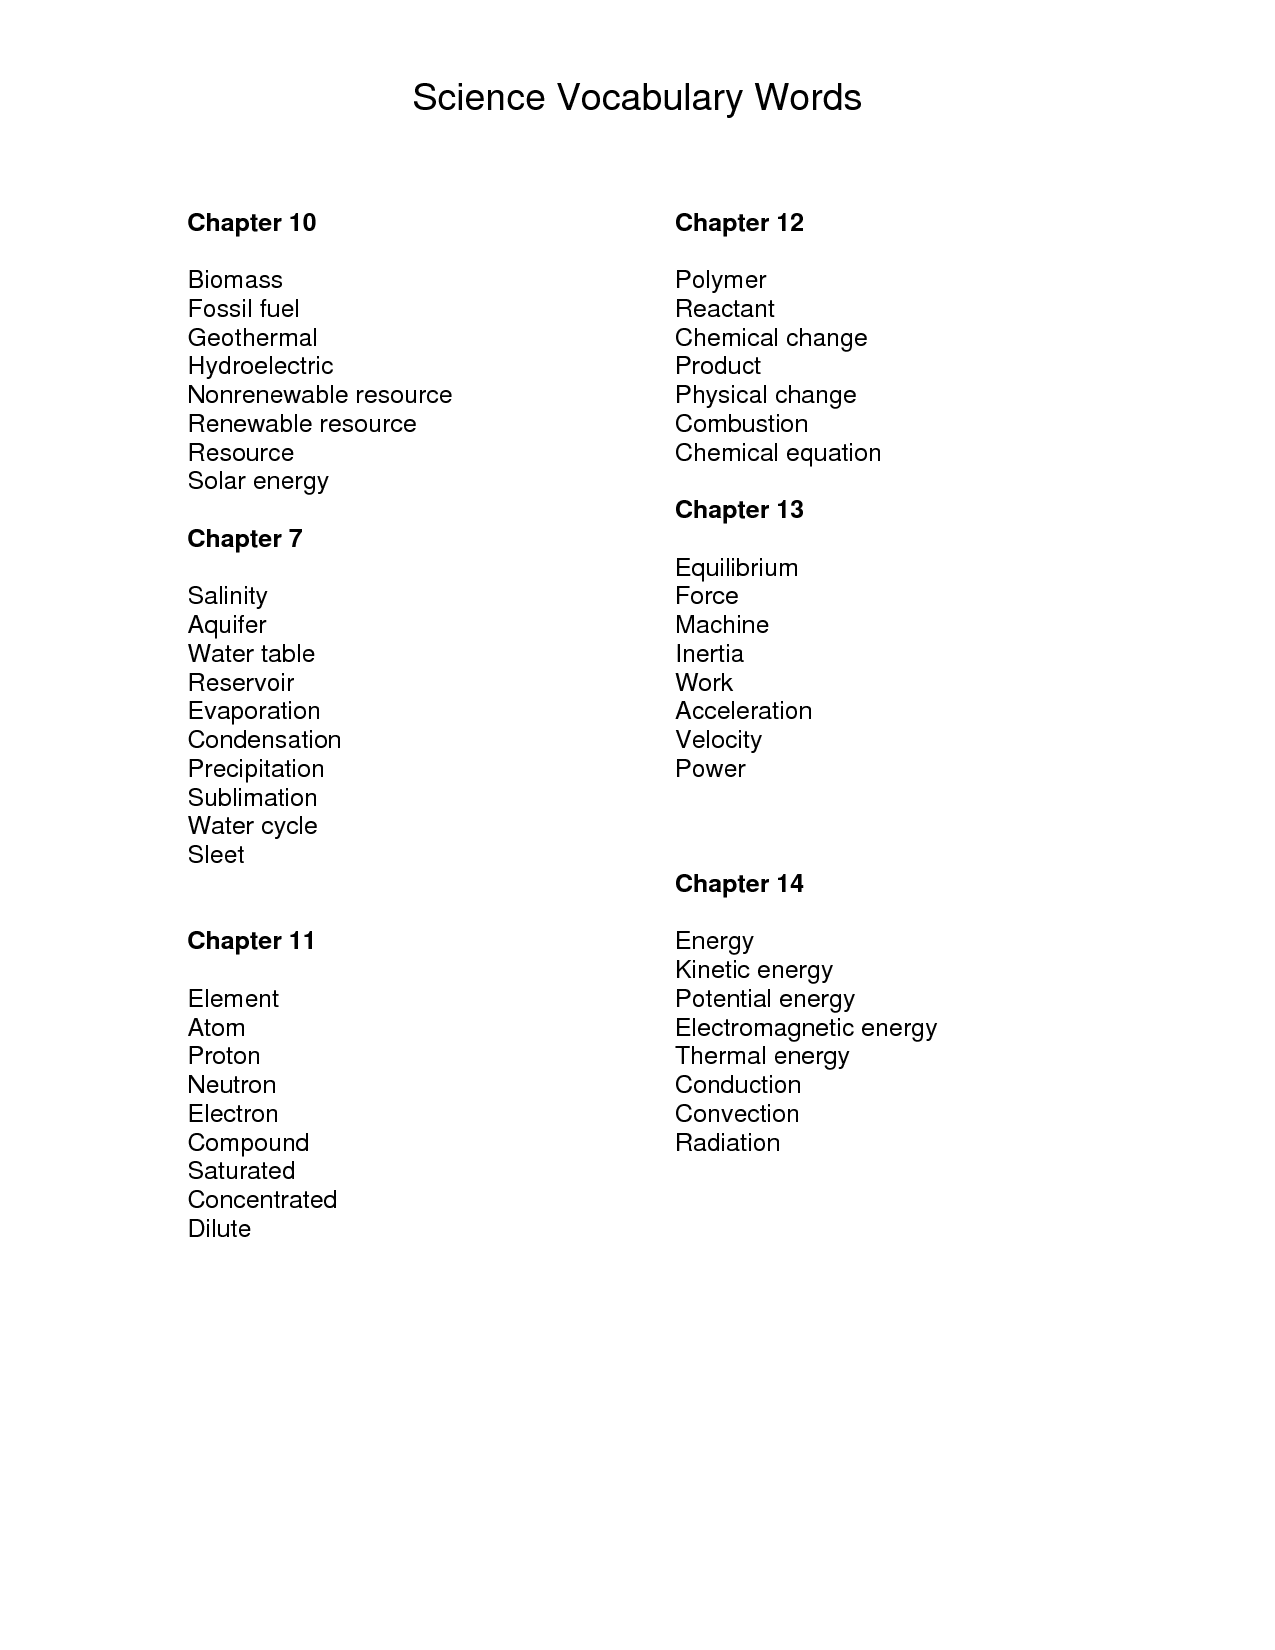 Science Vocabulary Word List In